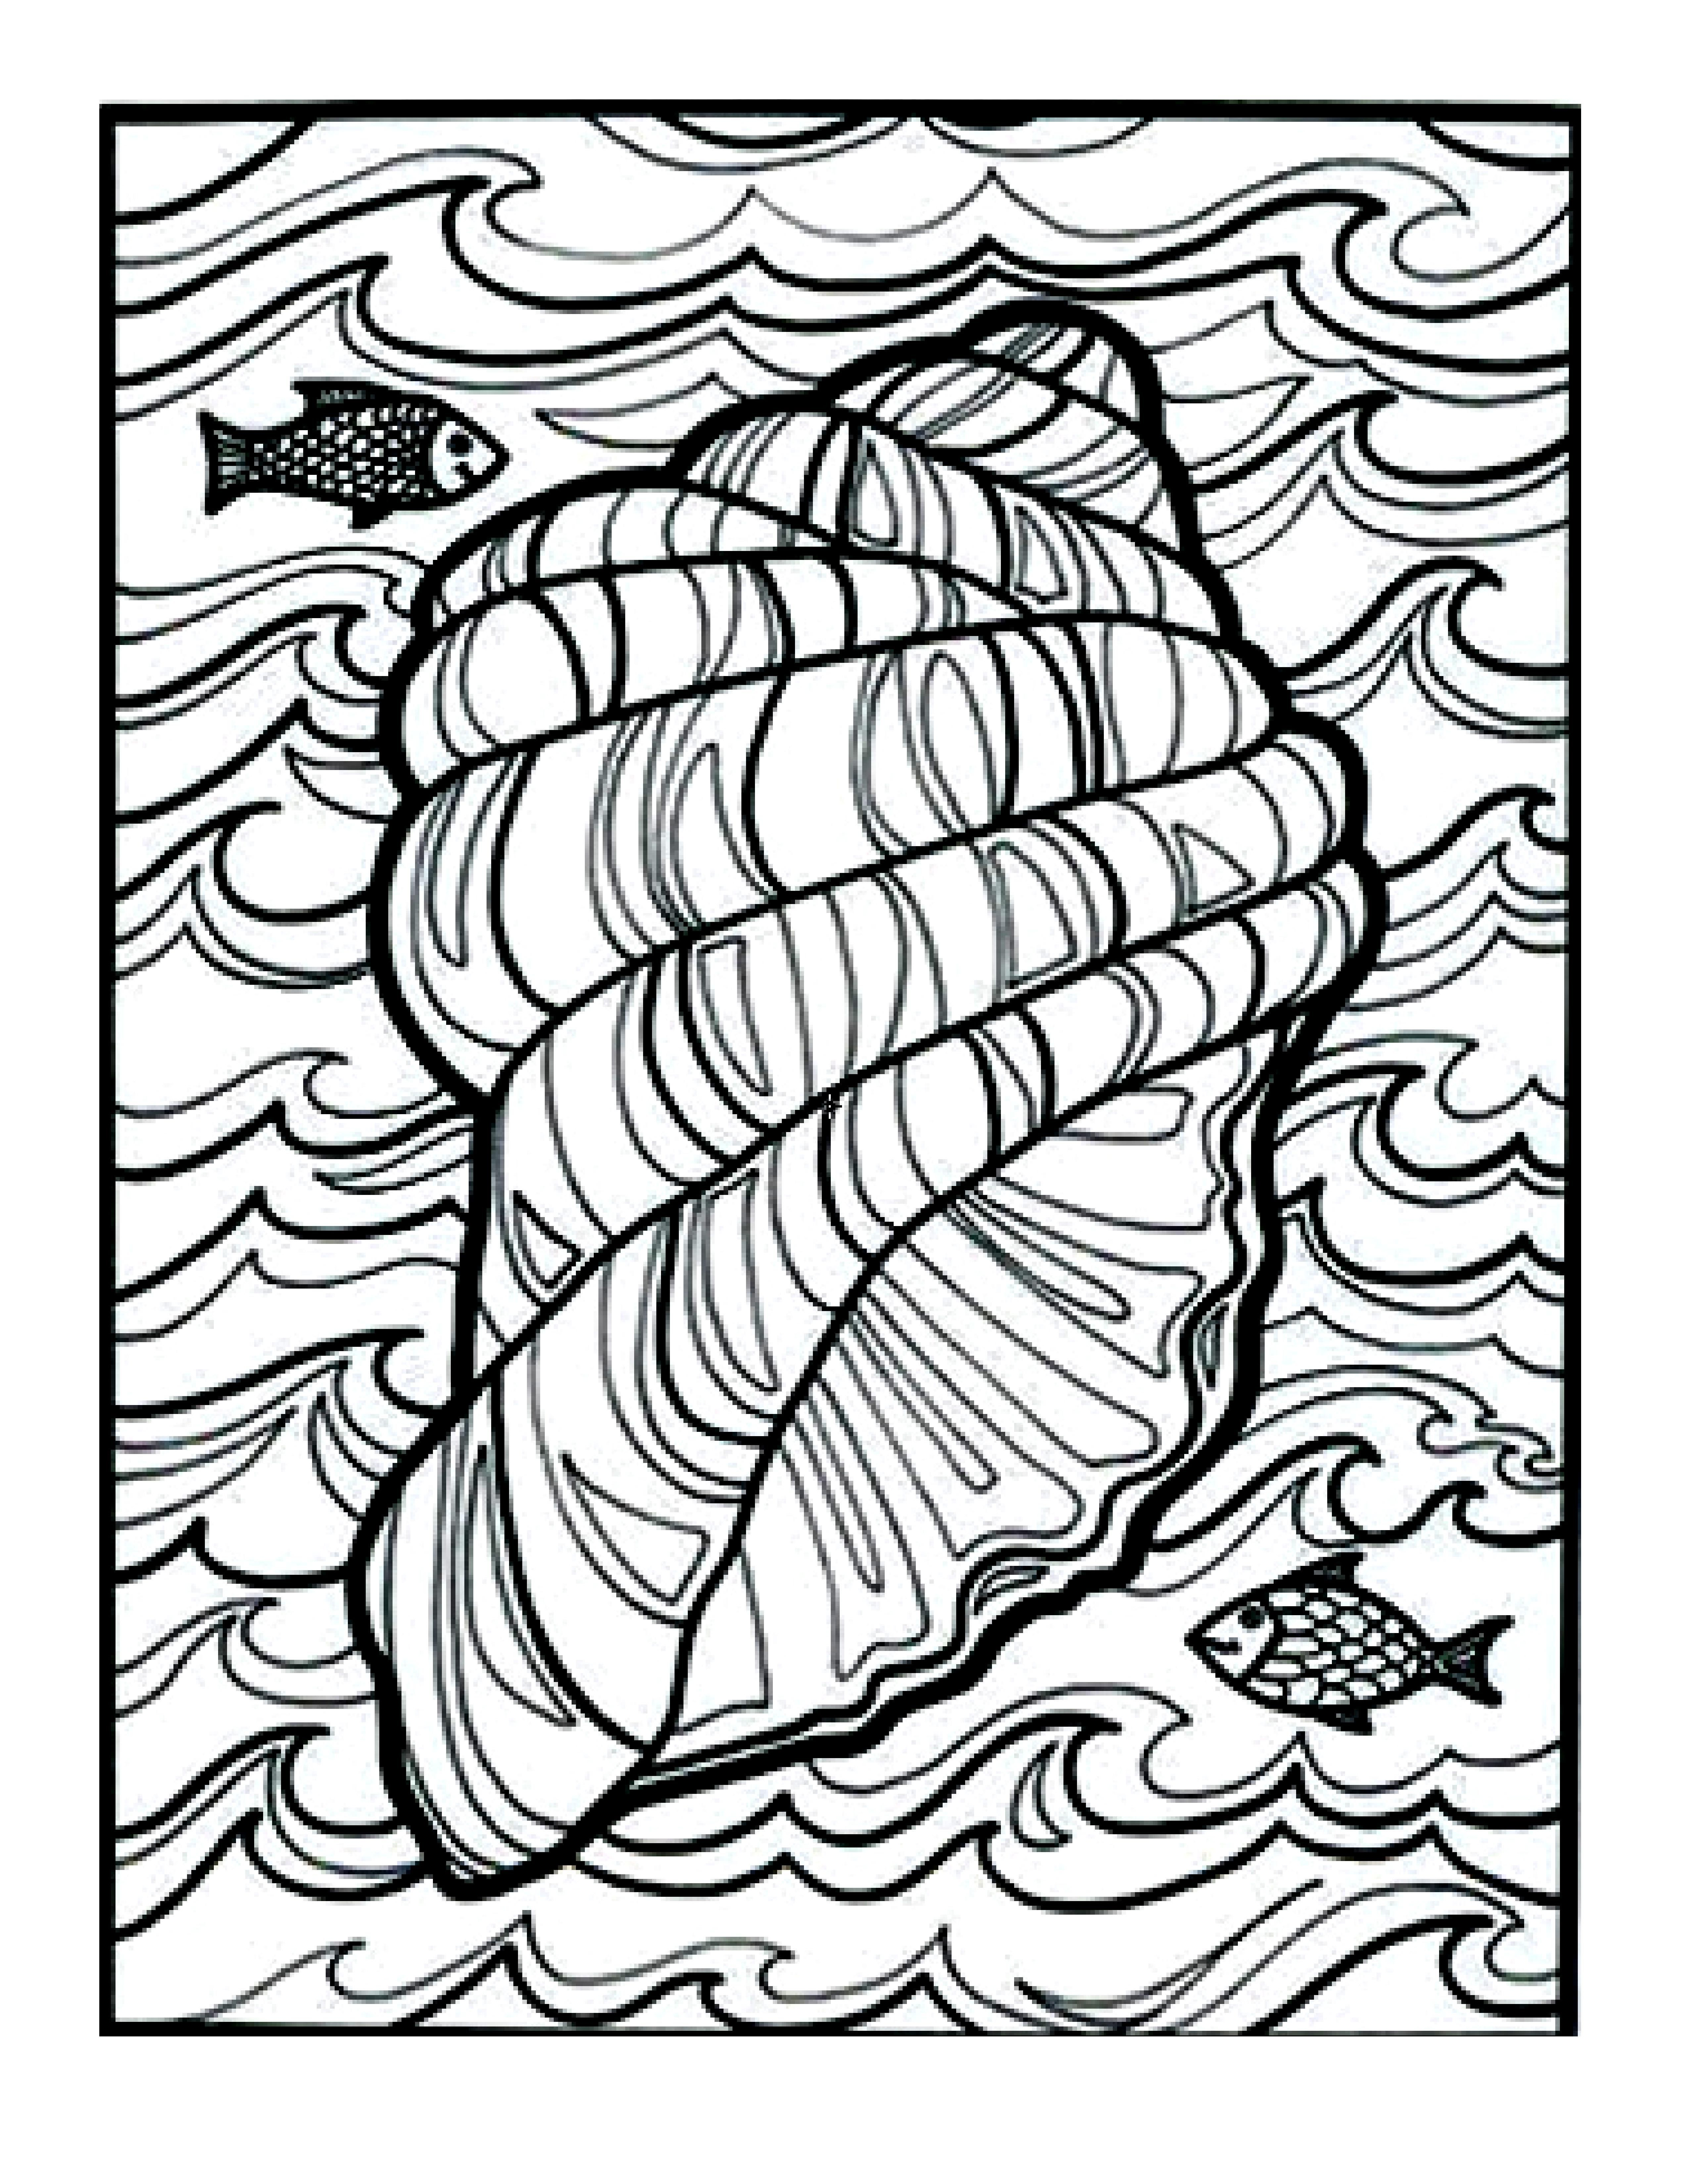 Pin By Linda Schmidt On Let S Doodle Coloring Pages Sun Coloring Pages Moon Coloring Pages Mandala Coloring Pages